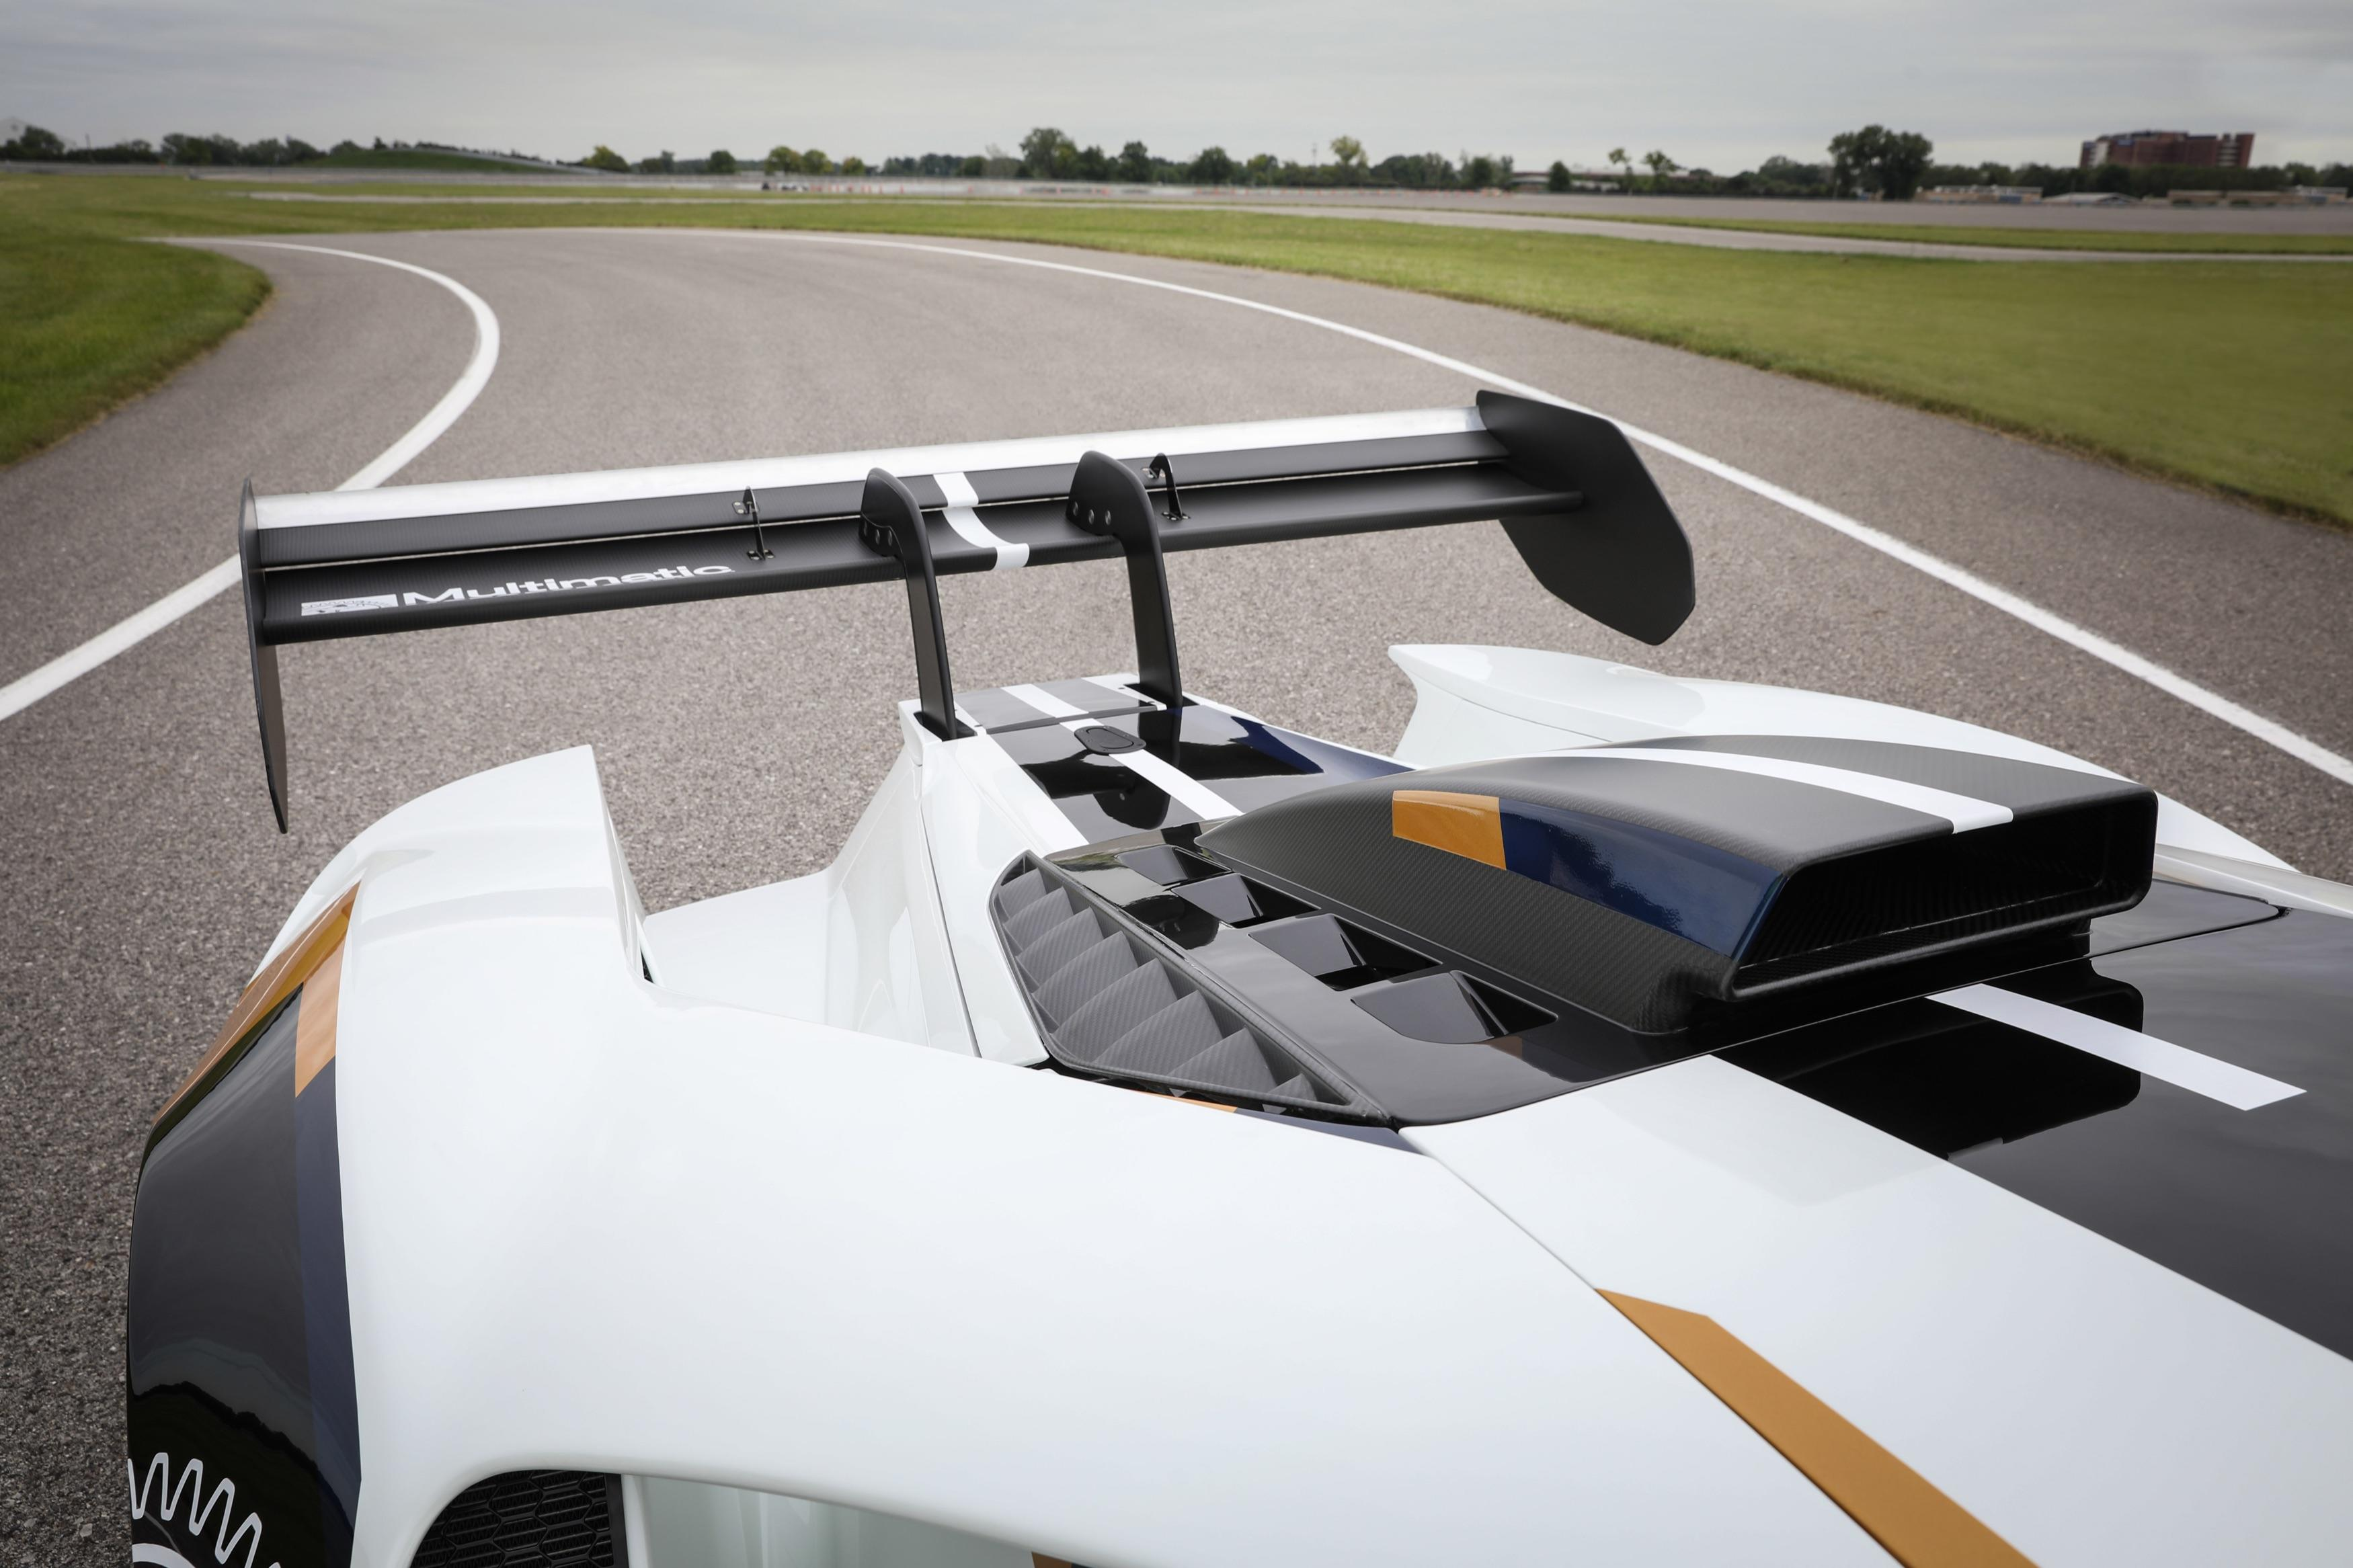 Ford GT Mk II rear wing and air intake